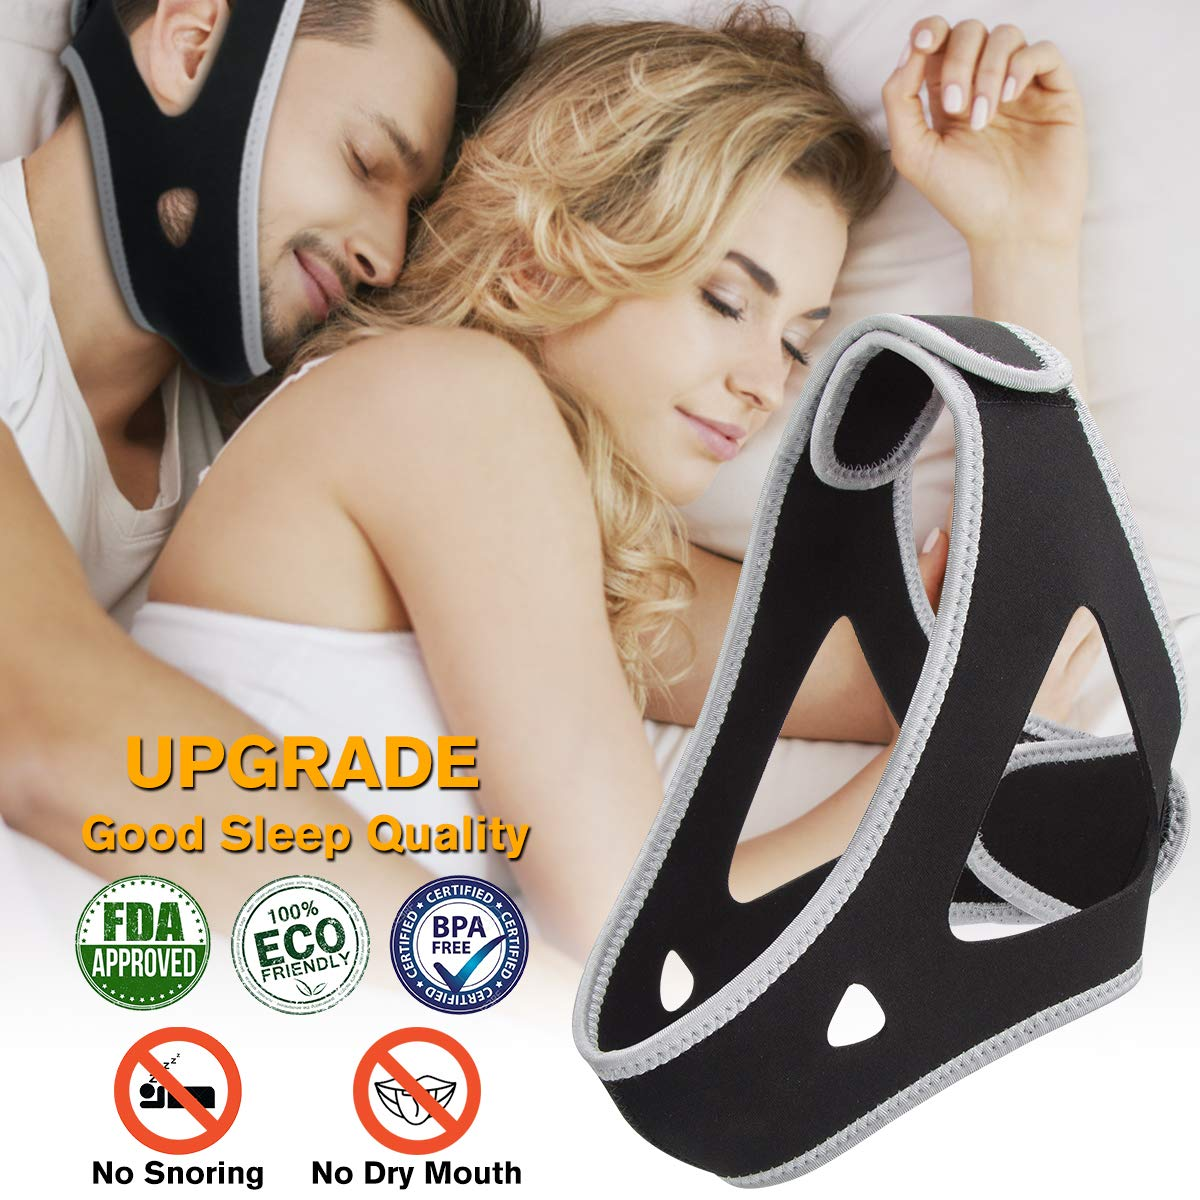 Anti Snoring Chin Strap, Snoring Solution and Anti Snoring Devices, Snoring Chin Strap for Sleep, Adjustable and Flexible Snore Chin Strap for Sleeping, Stop Snoring Devices for Men Women Kids